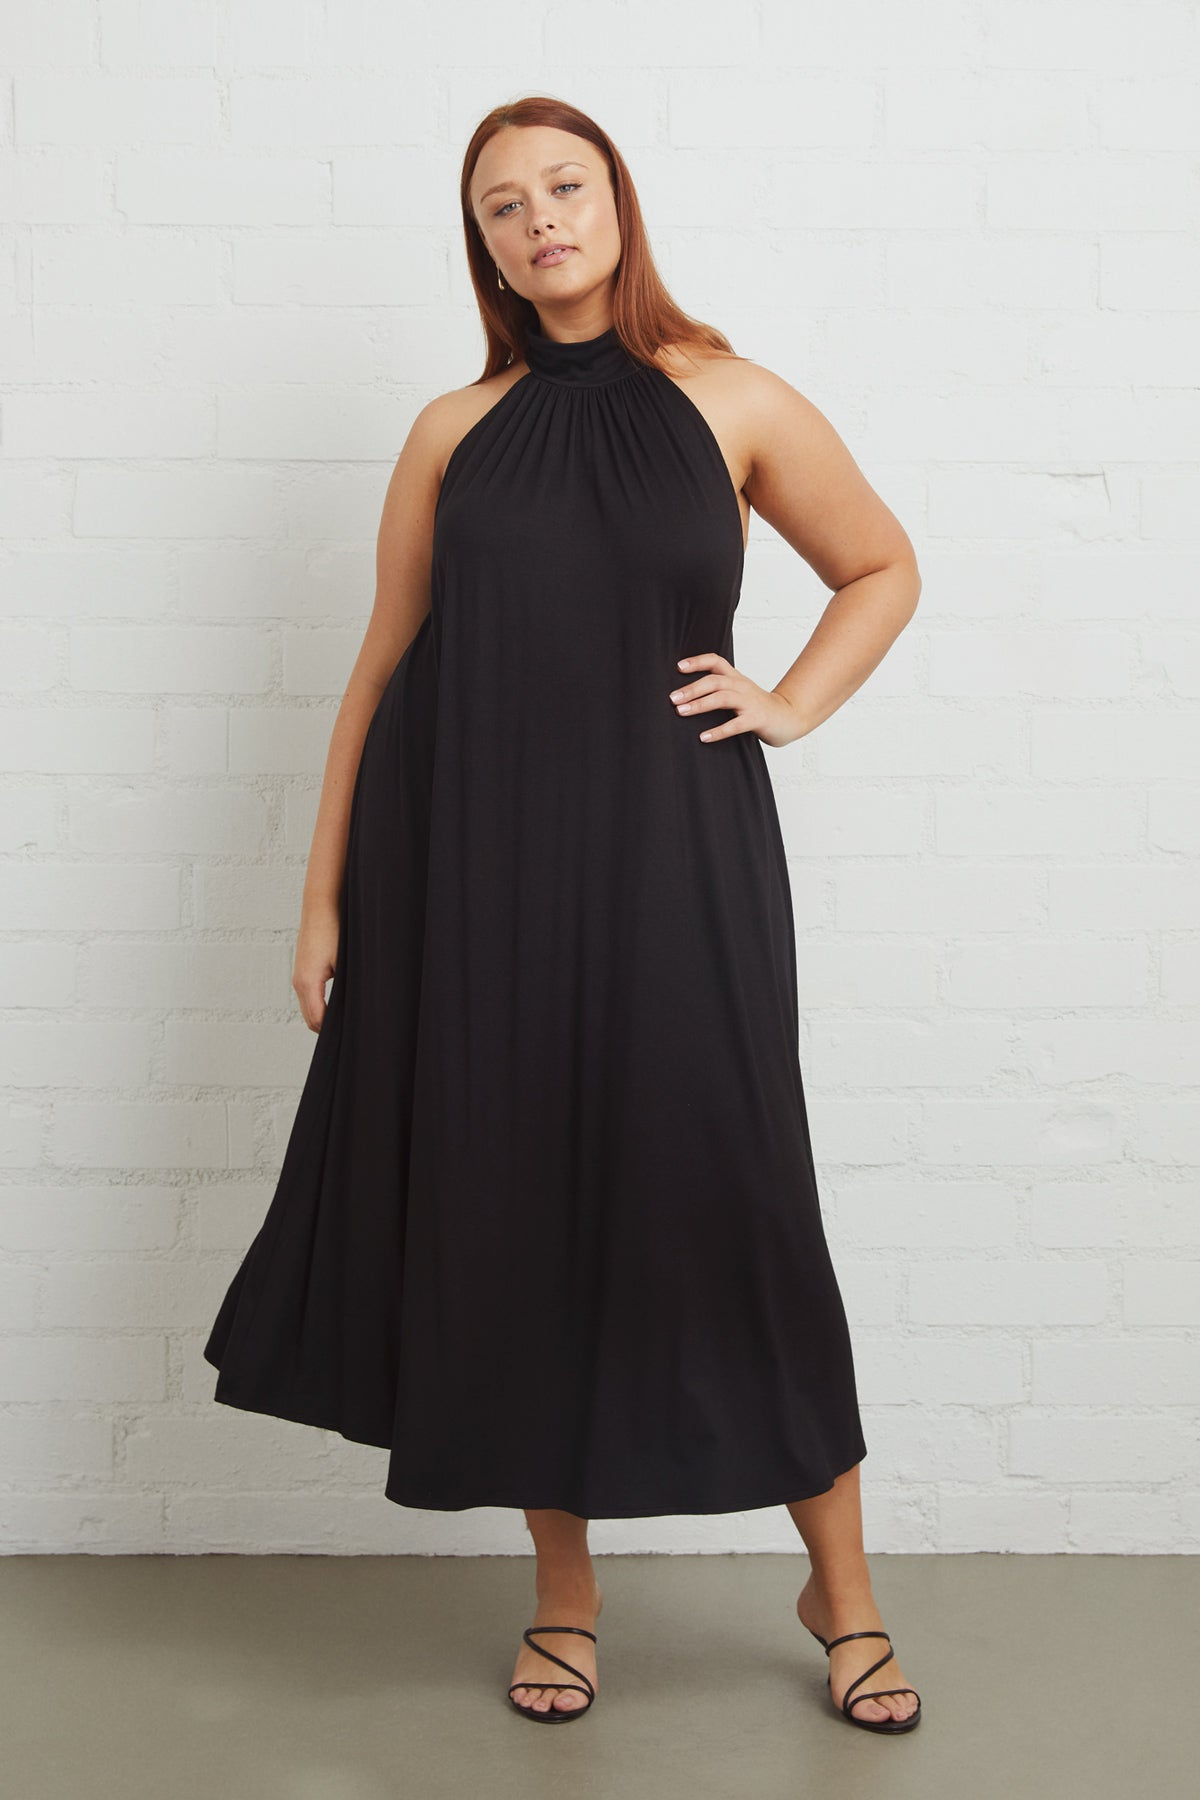 Enzo Dress - Black, Plus Size